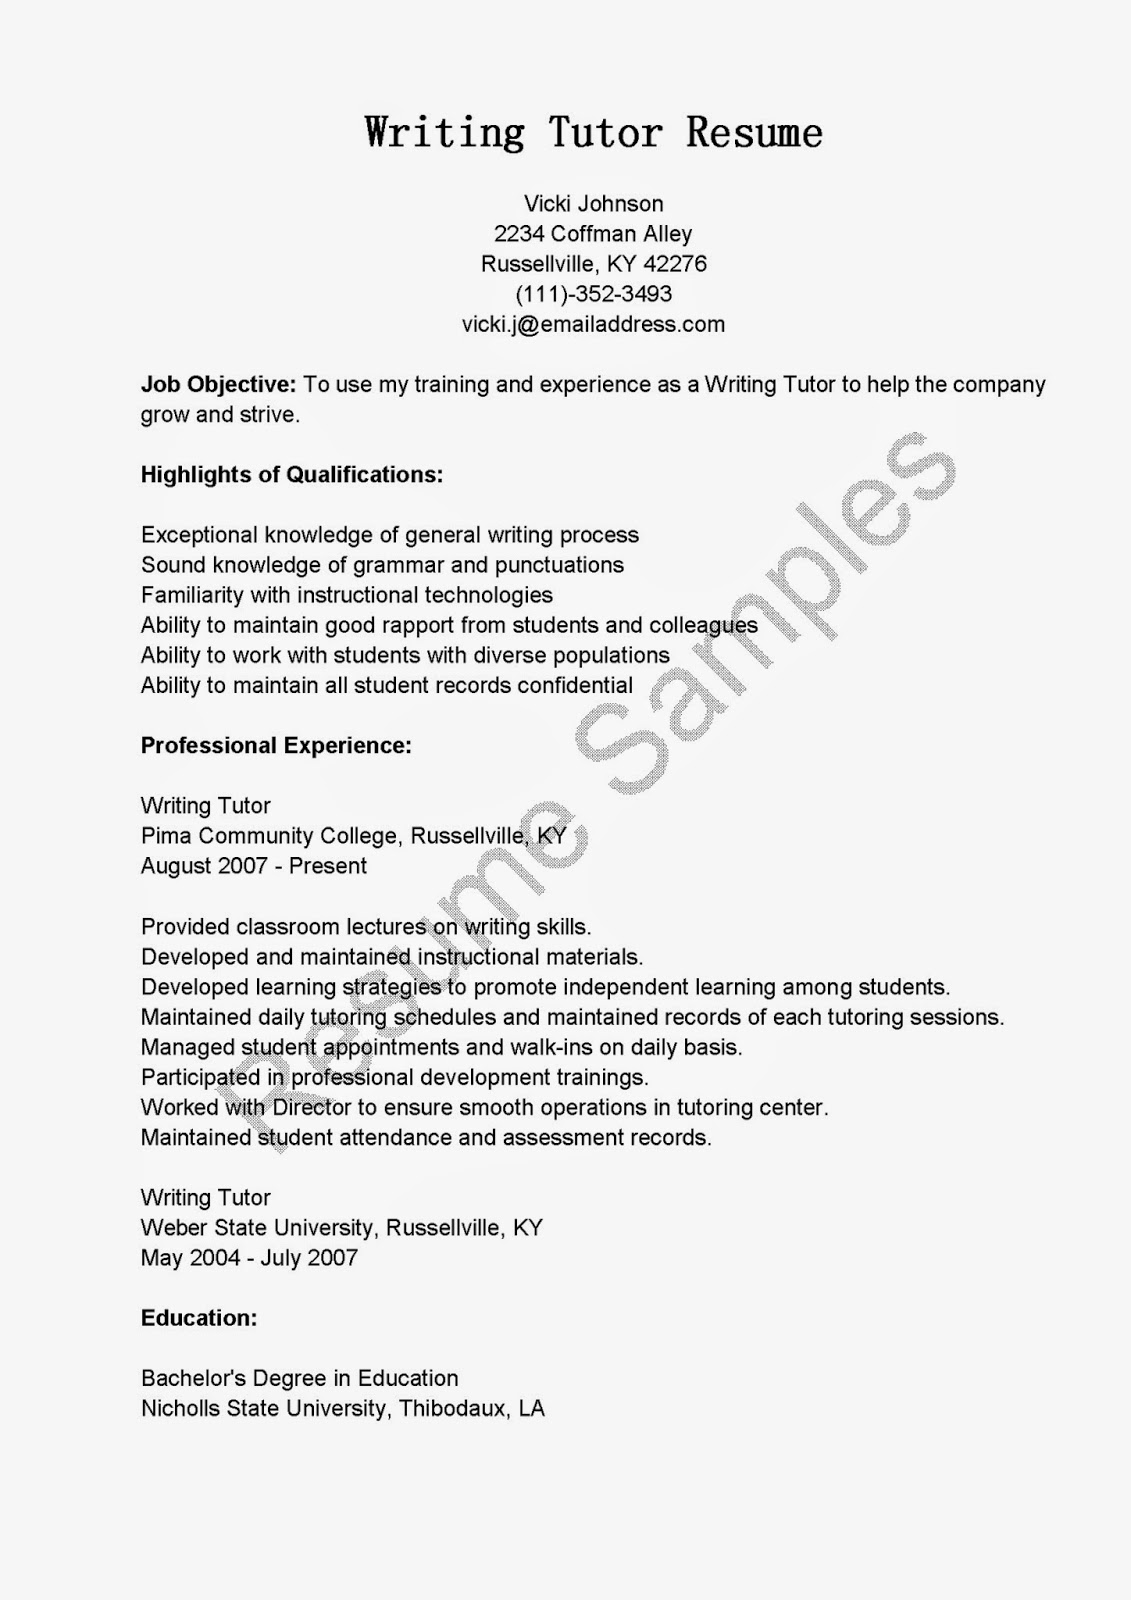 resume samples  writing tutor resume sample